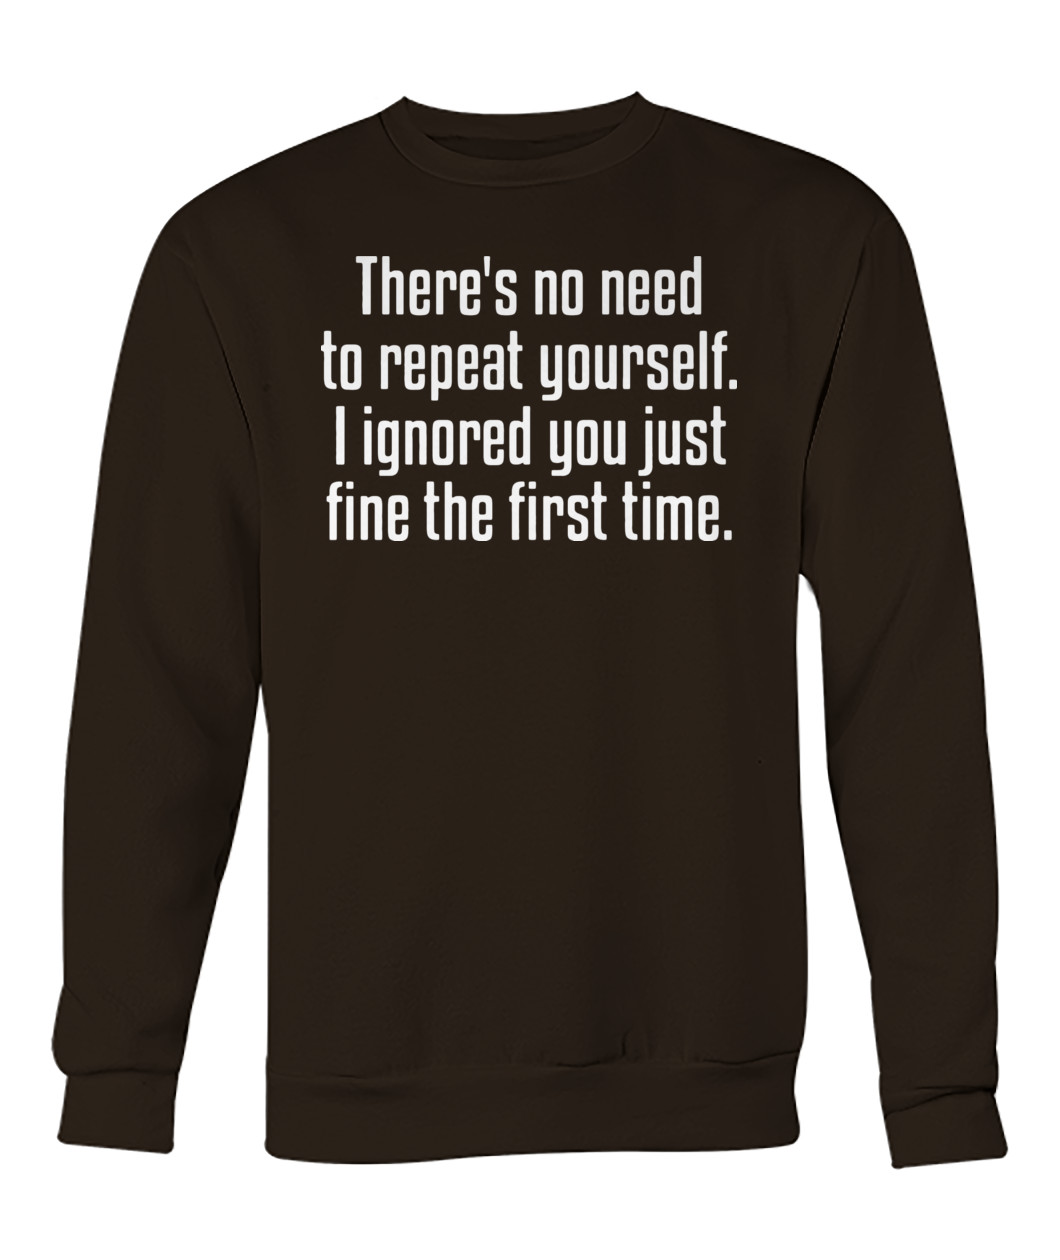 There's no need to repeat yourself I ignored you sweatshirt